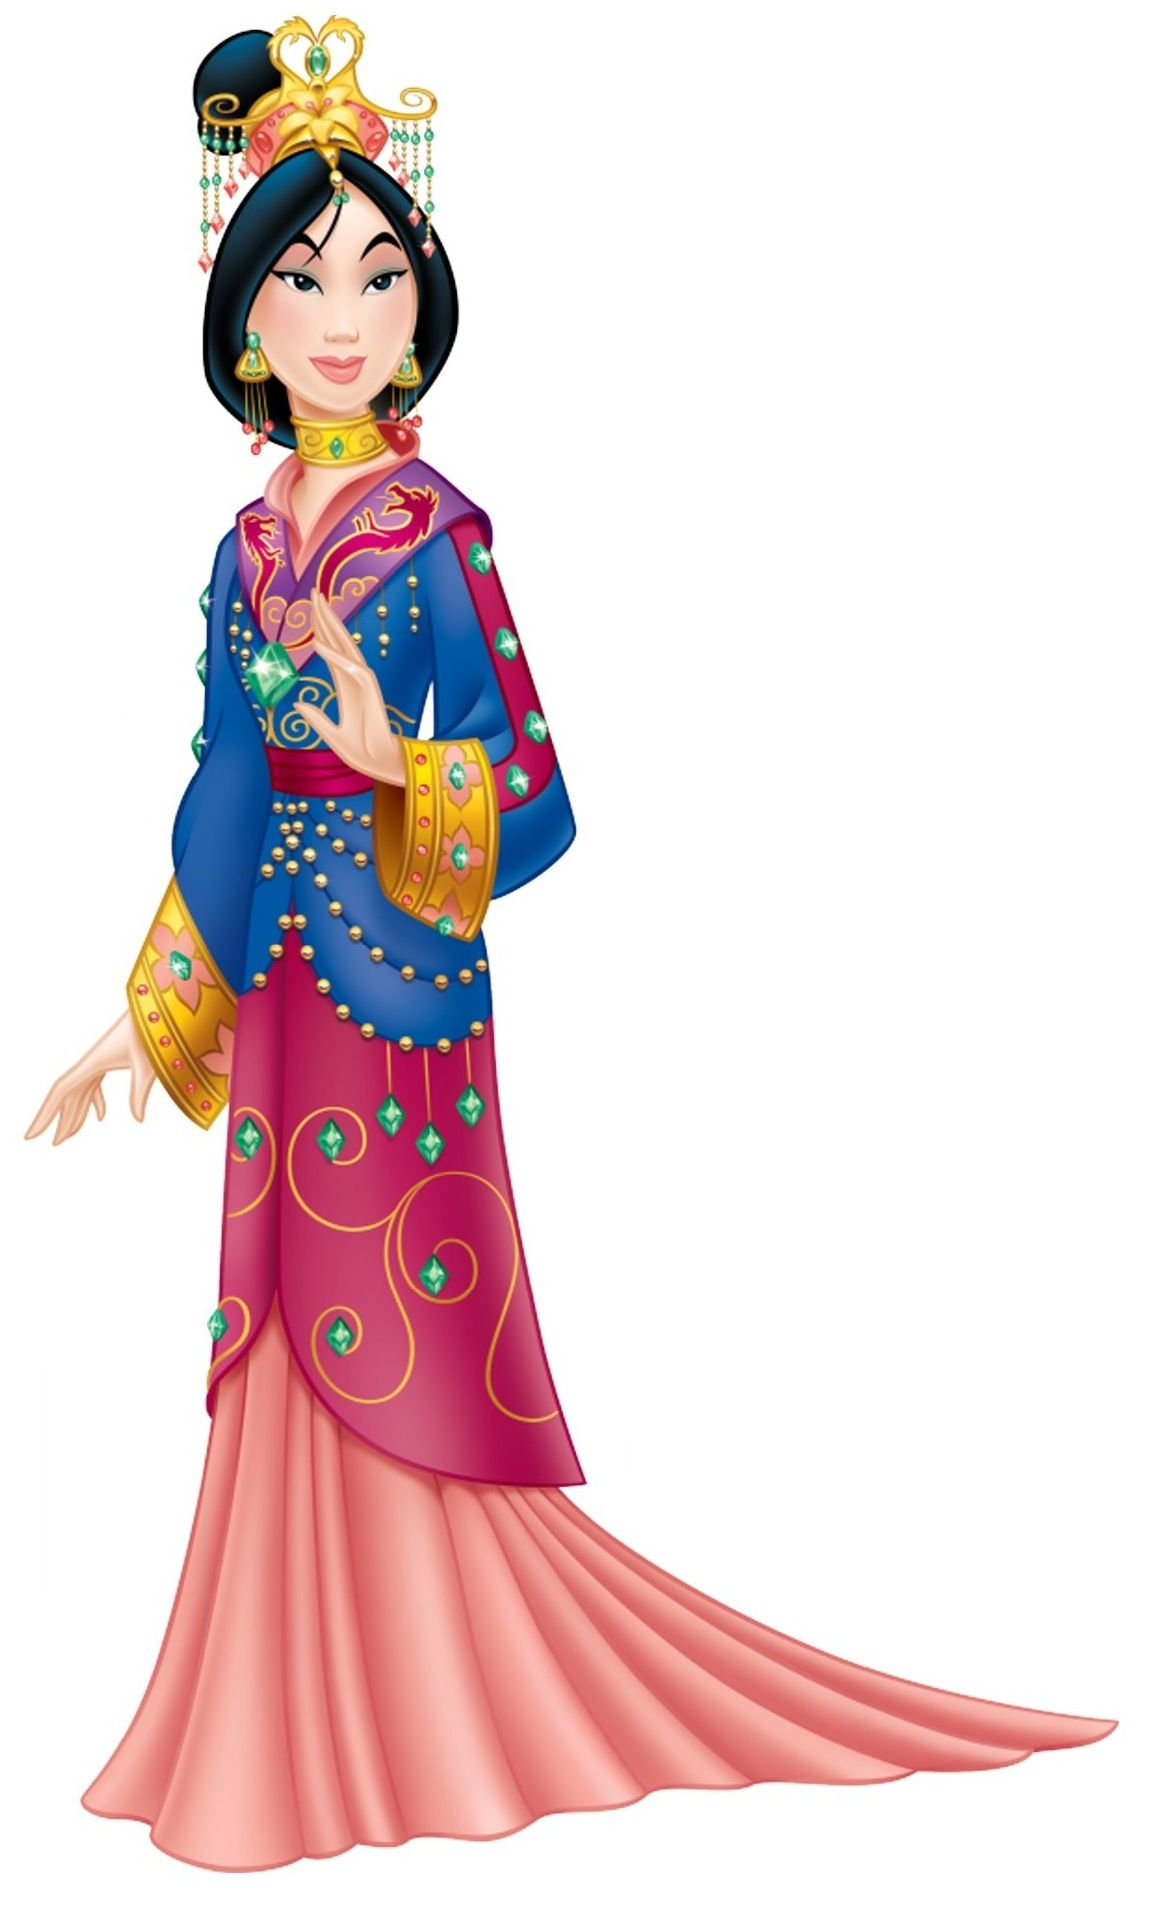 Disney Inspired Outfits Belle Disney Princess images...